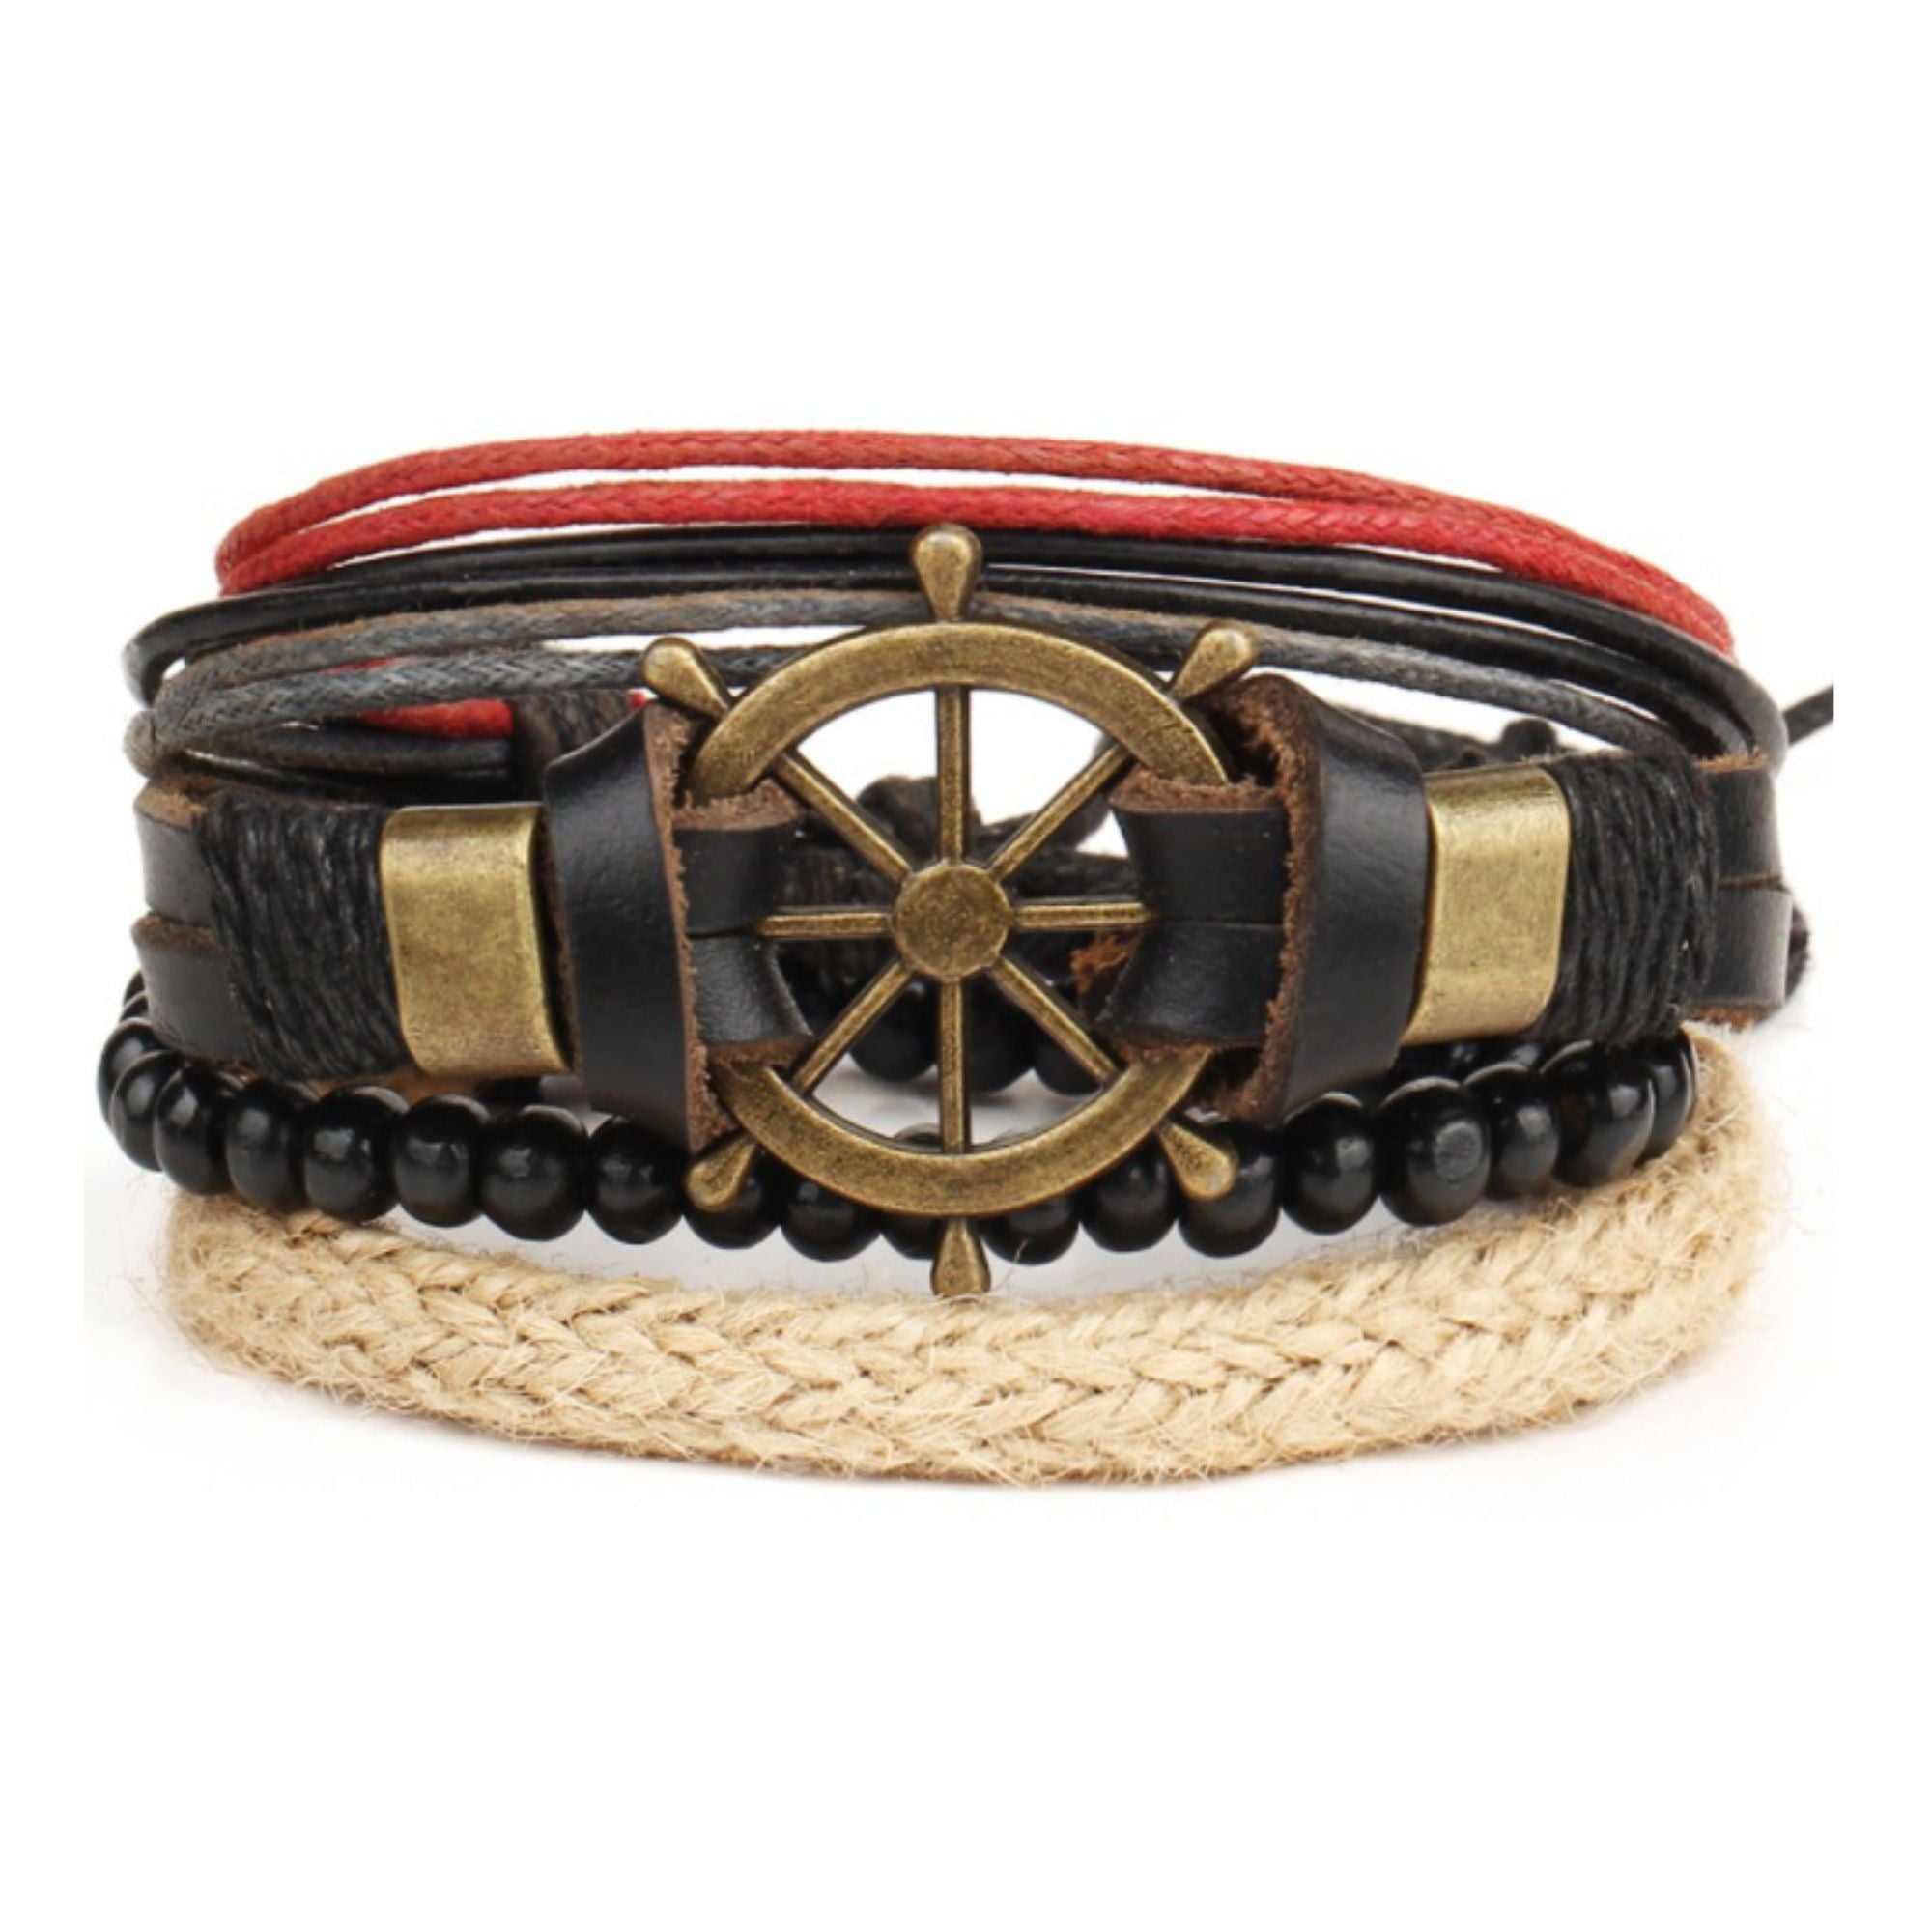 Multilayer Leather Alloy Rudder Cuff BRACELET